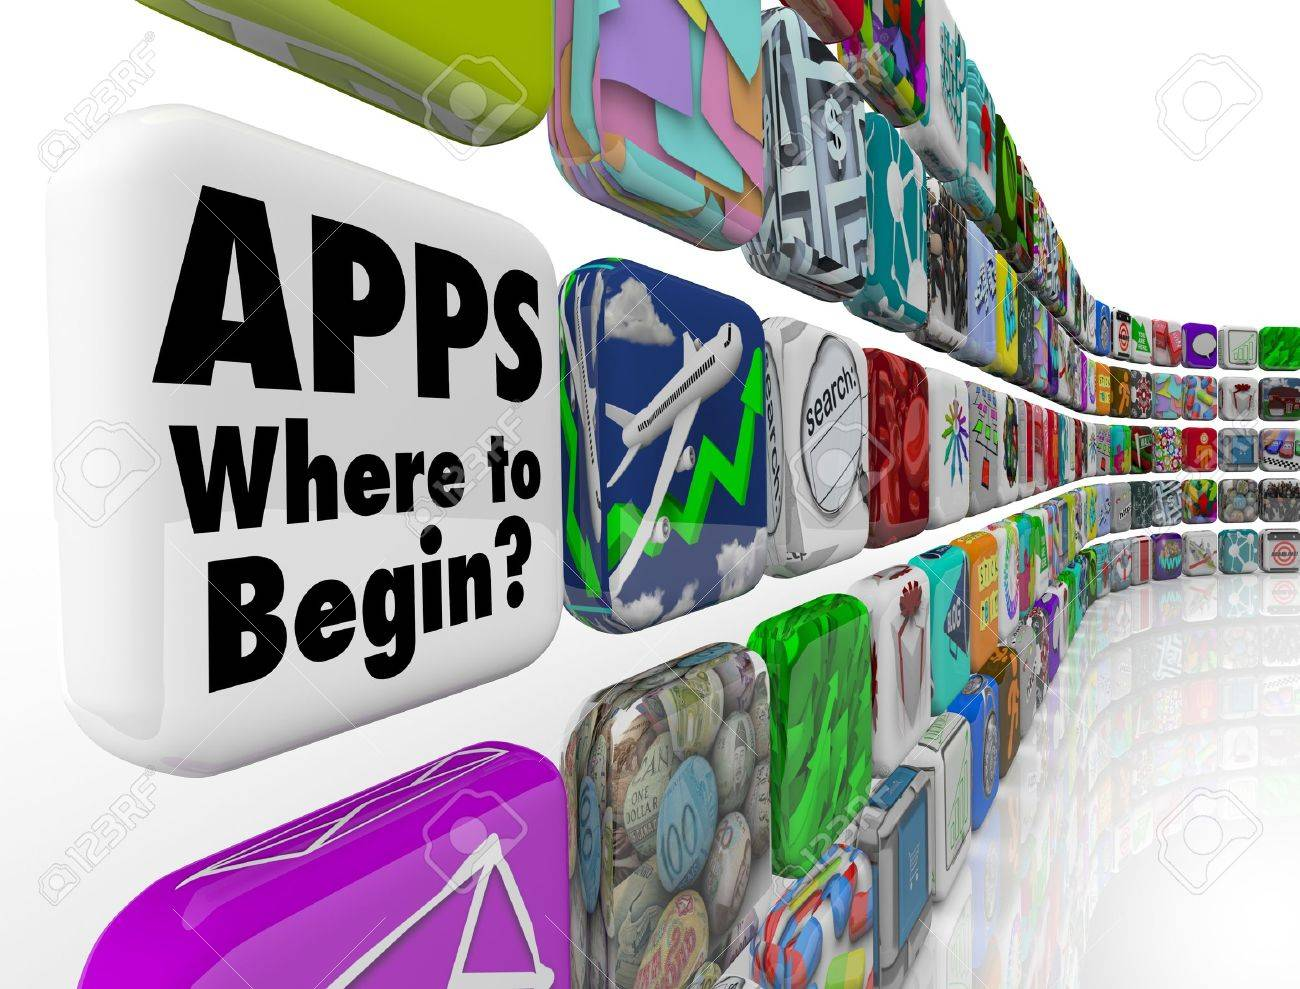 The words Apps - Where to Begin asking if you need help choosing the best app programs or software to put on your mobile device or smart phone, or how to develop applications Stock Photo - 12844725